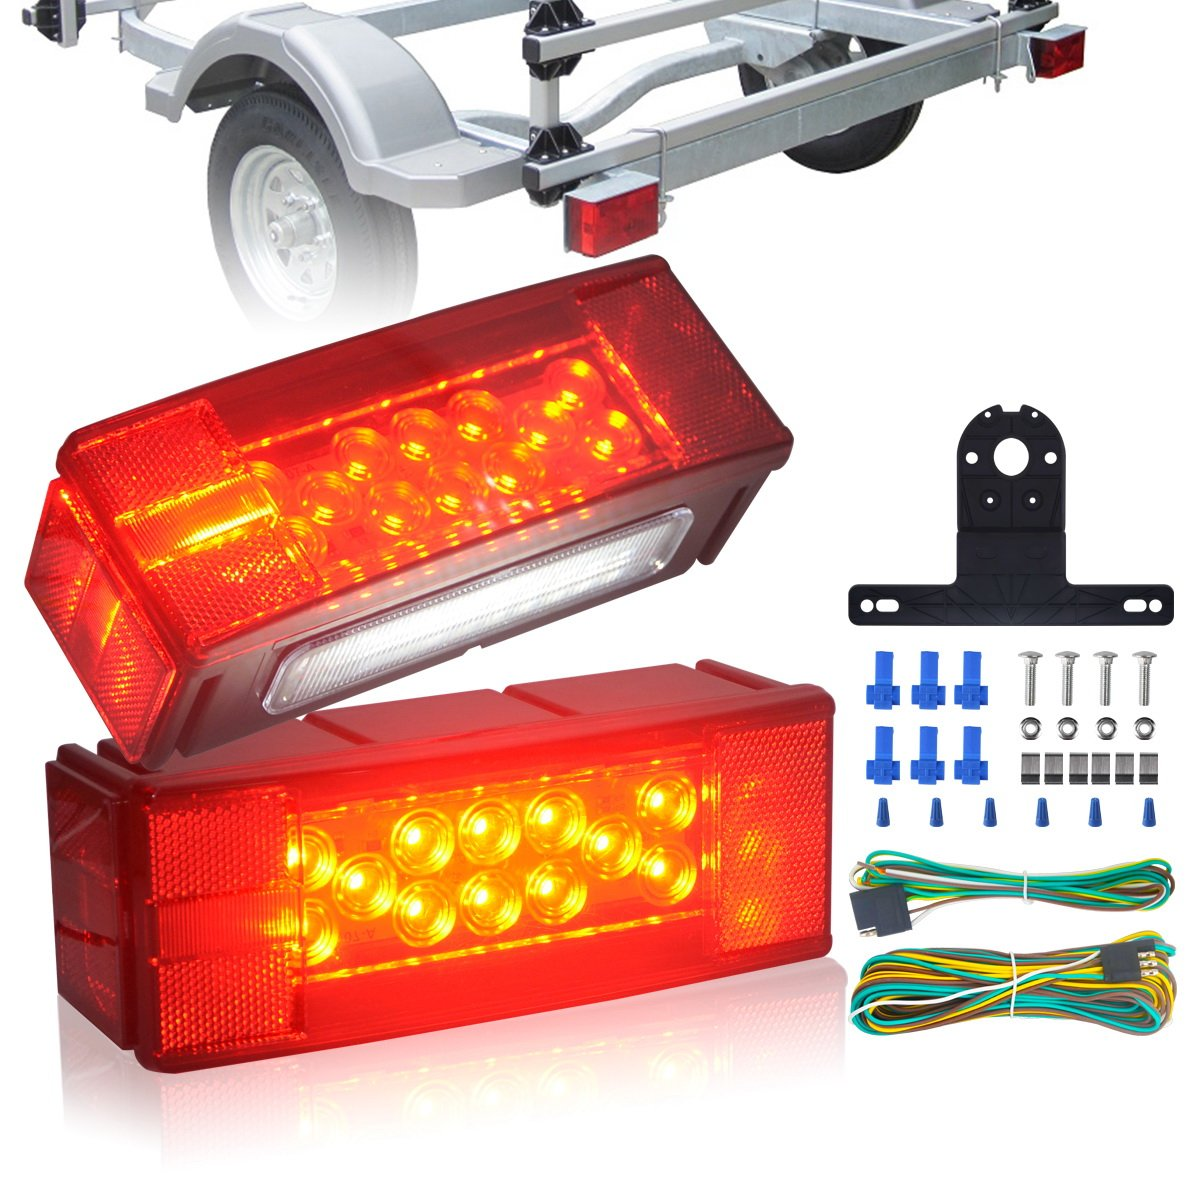 KASLIGHT IP68 Waterproof Trailer Lights, Boat Trailer light Led Boat Trailer Lights Submersible, Rectangular Led Trailer Lights,Marine Trailer Lights Tail Lights Stop Turn License Brake Over 80 Inches